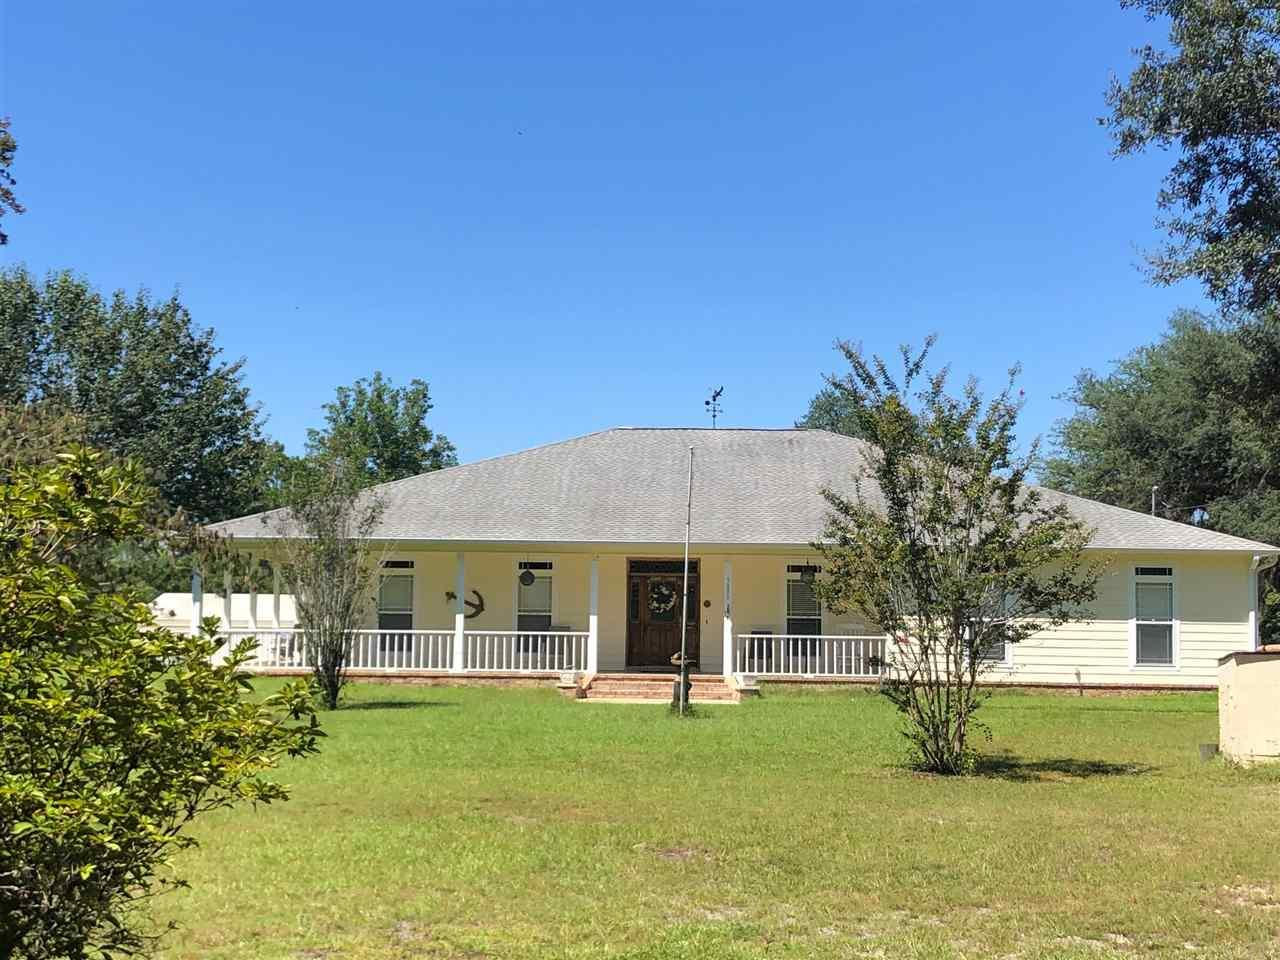 282' Feet on deep protected Blackwater River with access to Escambia Bay, Pensacola Bay direct to the Gulf!  This 3 acre parcel is well maintained with this custom built one story, 2,362 sq. ft. home built 2006.  Nice boat trek boat dock (horseshoe shape) with boat lift for a 26-28' boat, a  second slip, lighting, riprap for dock, and a 3 car garage!  This home has nice kitchen / living dining open area with gas fireplace, kitchen window facing large wrap around deck and waterfront.  The master suite is very private with large bathroom, large walk in cedar closet, garden tub, separate shower and tiled floors.  The large master has high ceilings and faces the water.  On the other side of the home are the other bedrooms separated by a full bath.  The study is in the foyer entrance.  Could be used as 4th bedroom.   This home has pine hardwood floors, built ins, security system, lovely covered wrap around porch and nice kitchen /living area w island   This house is on an elevated 3' foundation and has never ever been flooded.  The property has a spacious steel 14 x 18 garage/storage as well as a large open car port housing lawn equipment, work area, etc.  The three car garage is off the kitchen and the entire property is sodded with lovely aged old oak trees with Spanish moss.  There is adjoining property currently for sale as well under a different MLS number on same street with approx.3 acres.  What is so wonderful is this home is very private at the end of Richard Lane on the water and one story!  It is relaxing and minutes from Interstate 10.   Very close driving distance to Milton, Pace and Pensacola is no more than 25 minutes away.  This home is move in ready.!